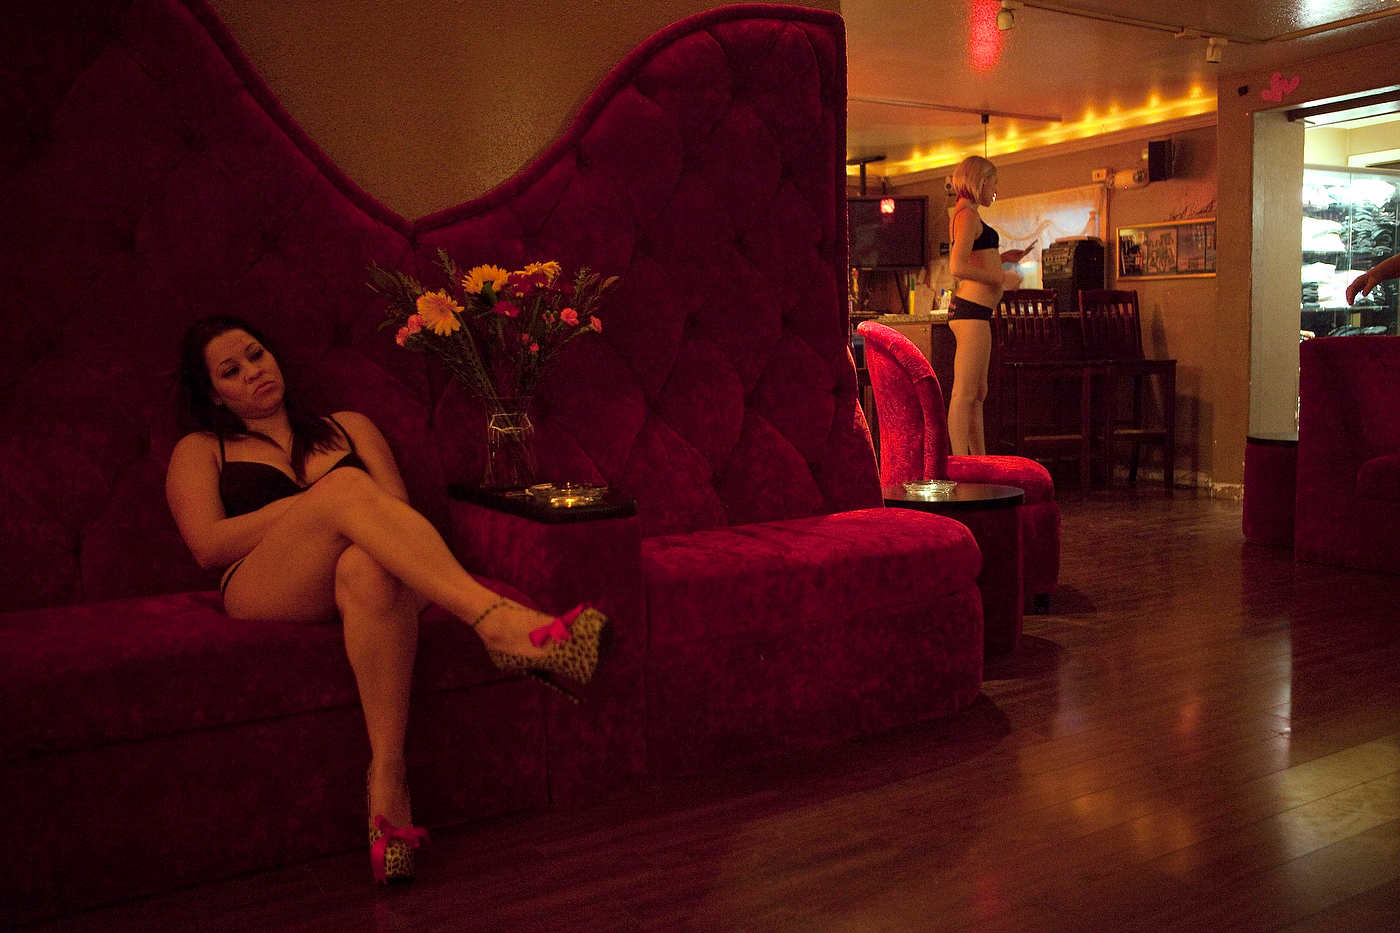 Prostitutes wait for clients at the Love Ranch.